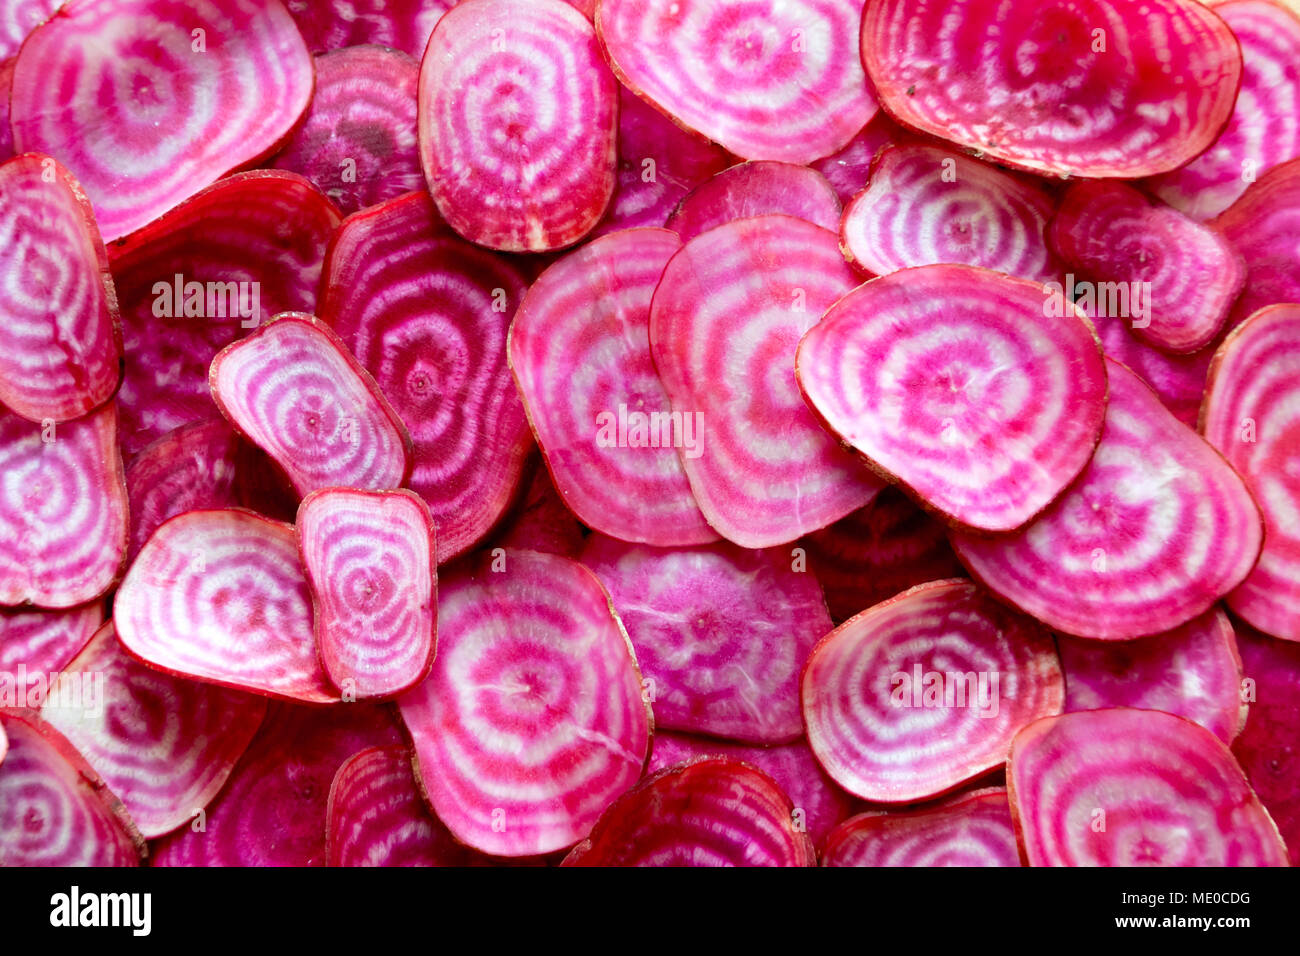 Colourful root vegetables slices.  Sliced organic chioggia beets (candy beetroot) showing their vibrant red and white concentric rings. - Stock Image